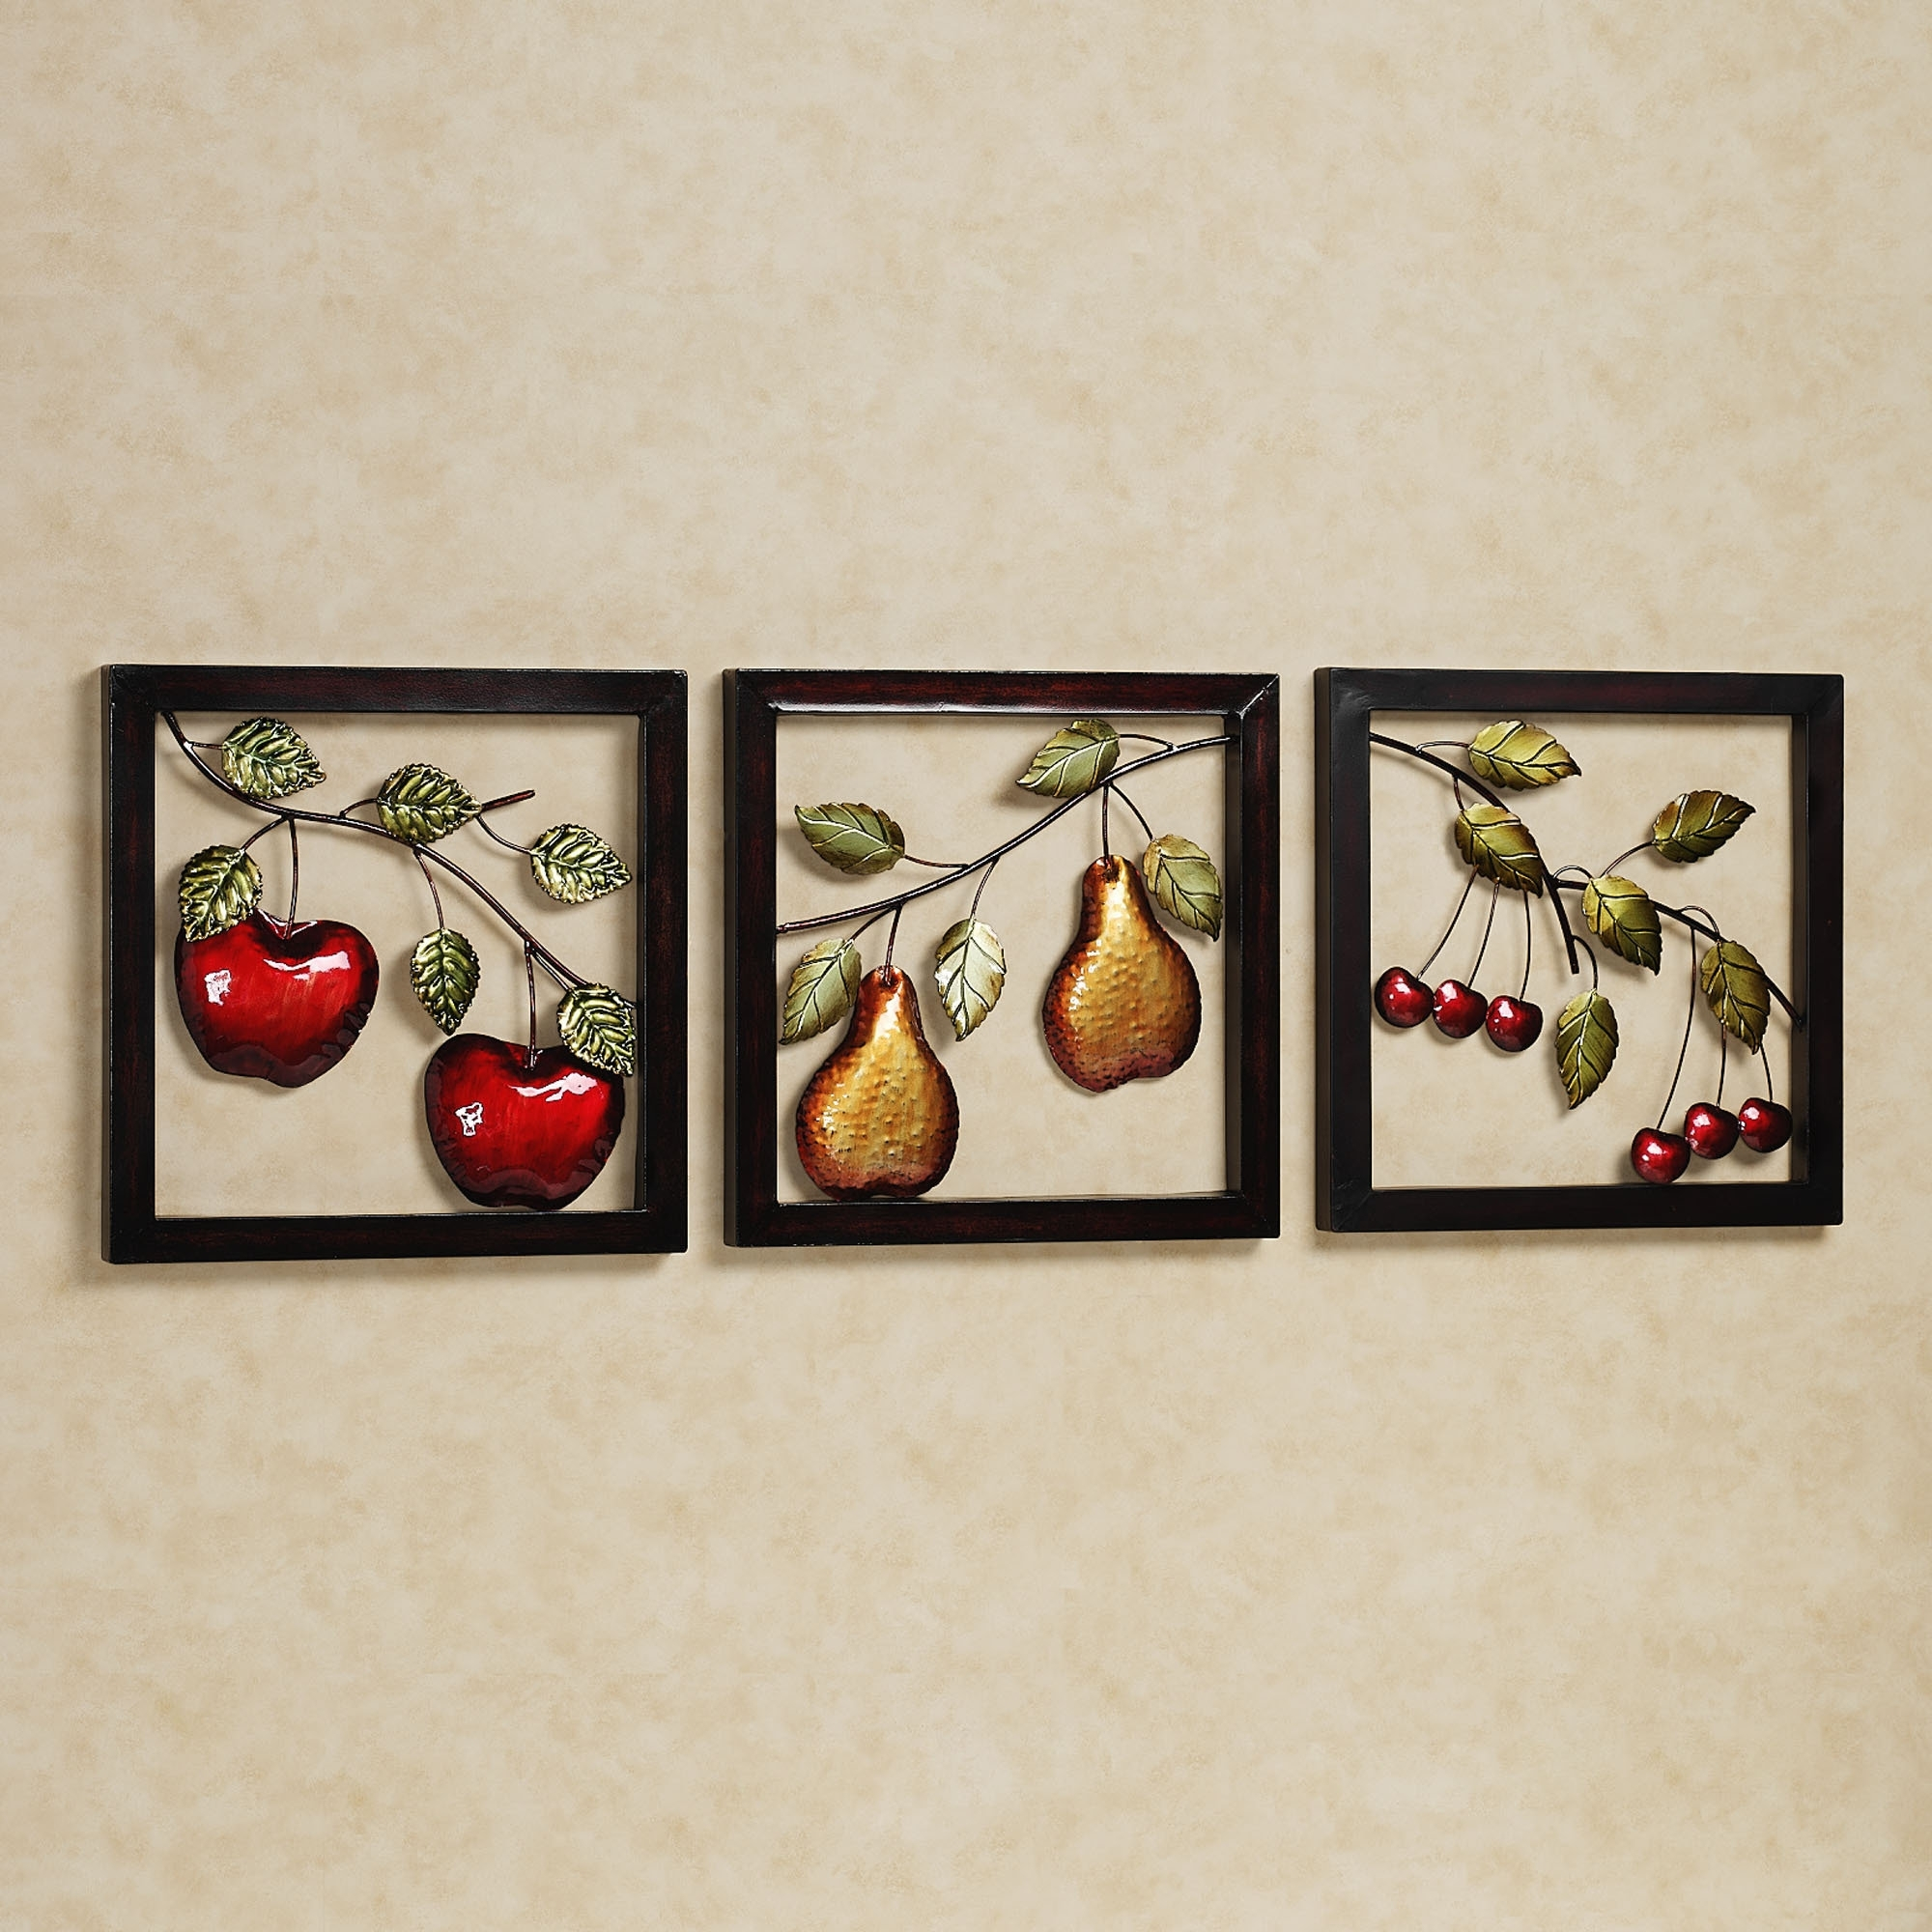 Beautiful Fruits Metal Wall Art Decor Kitchen With Black Frame Ideas Inside Current Wall Art For Kitchen (View 15 of 20)